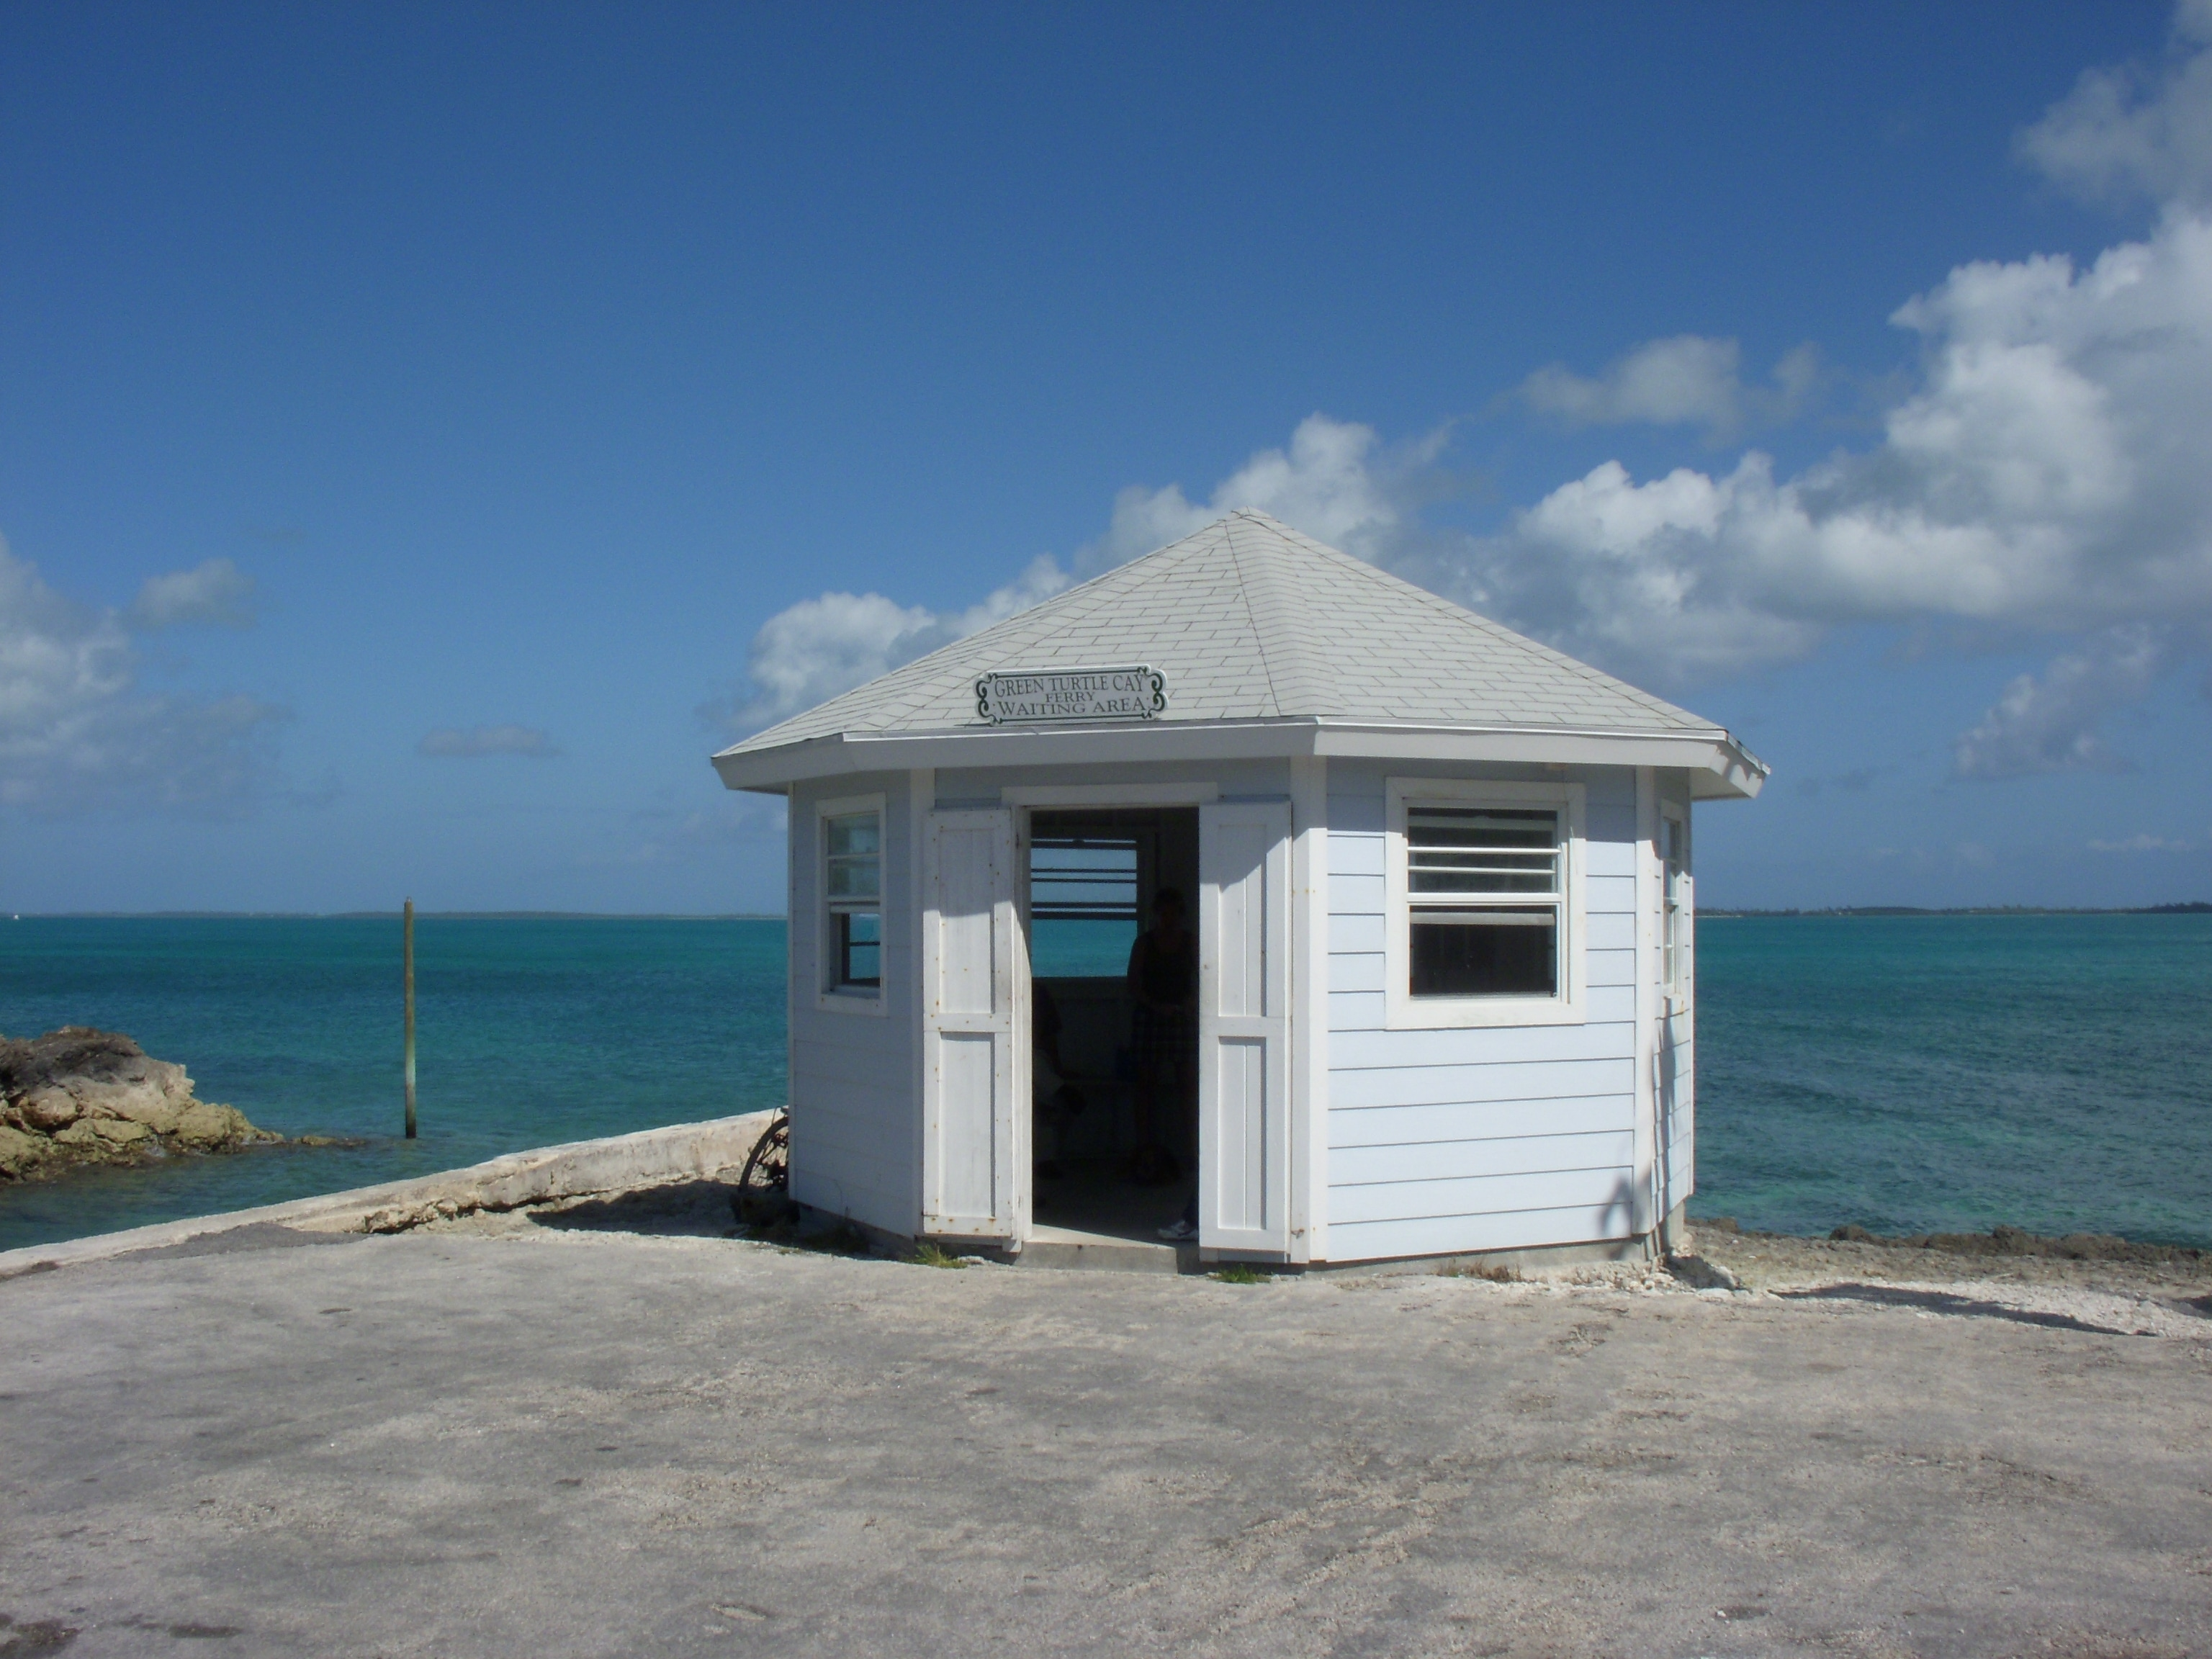 House rentals green turtle cay - The Green Turtle Ferry Dock Just North Of The Treasure Cay Airport